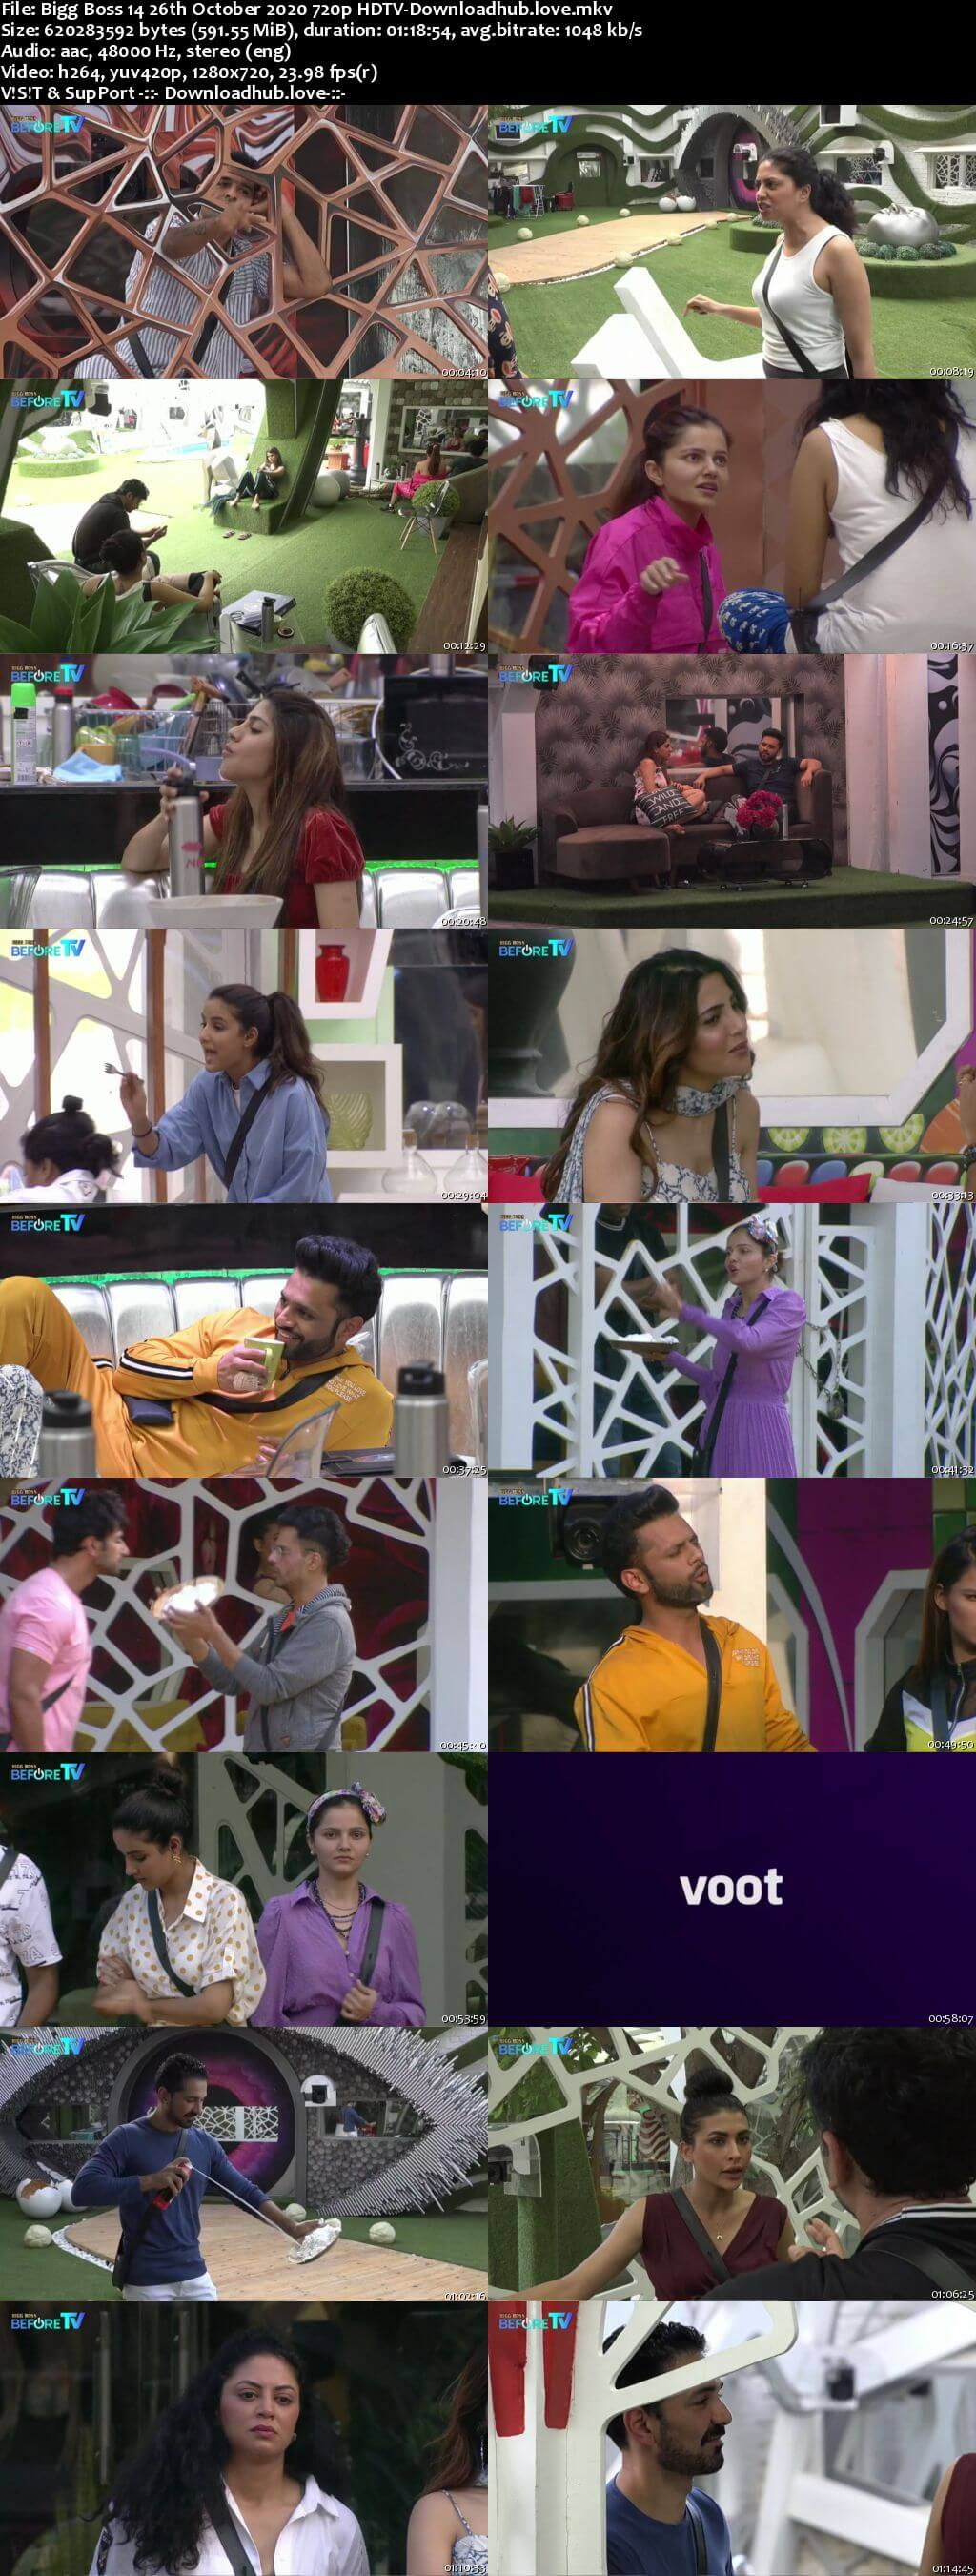 Bigg Boss 14 26th October 2020 Episode 23 720p 480p HDTV